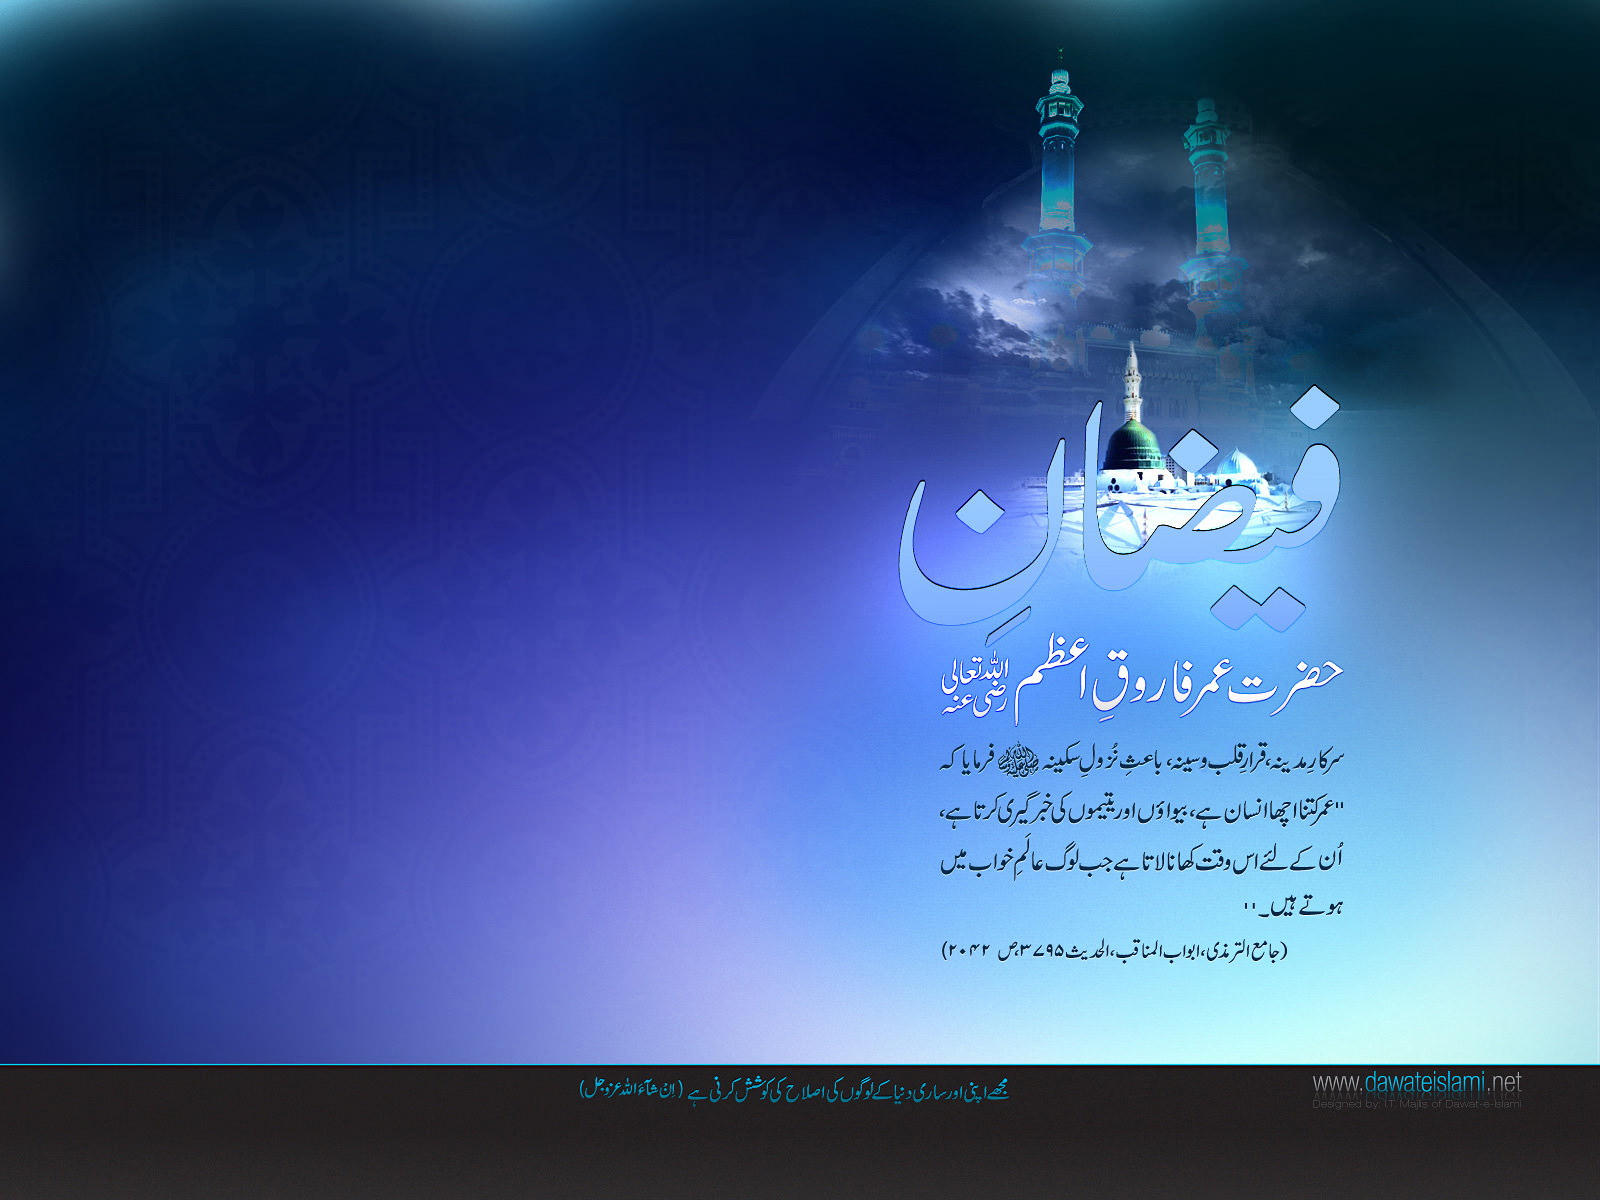 Wallpapers Faizan-e-Farooq-e-Azam 6